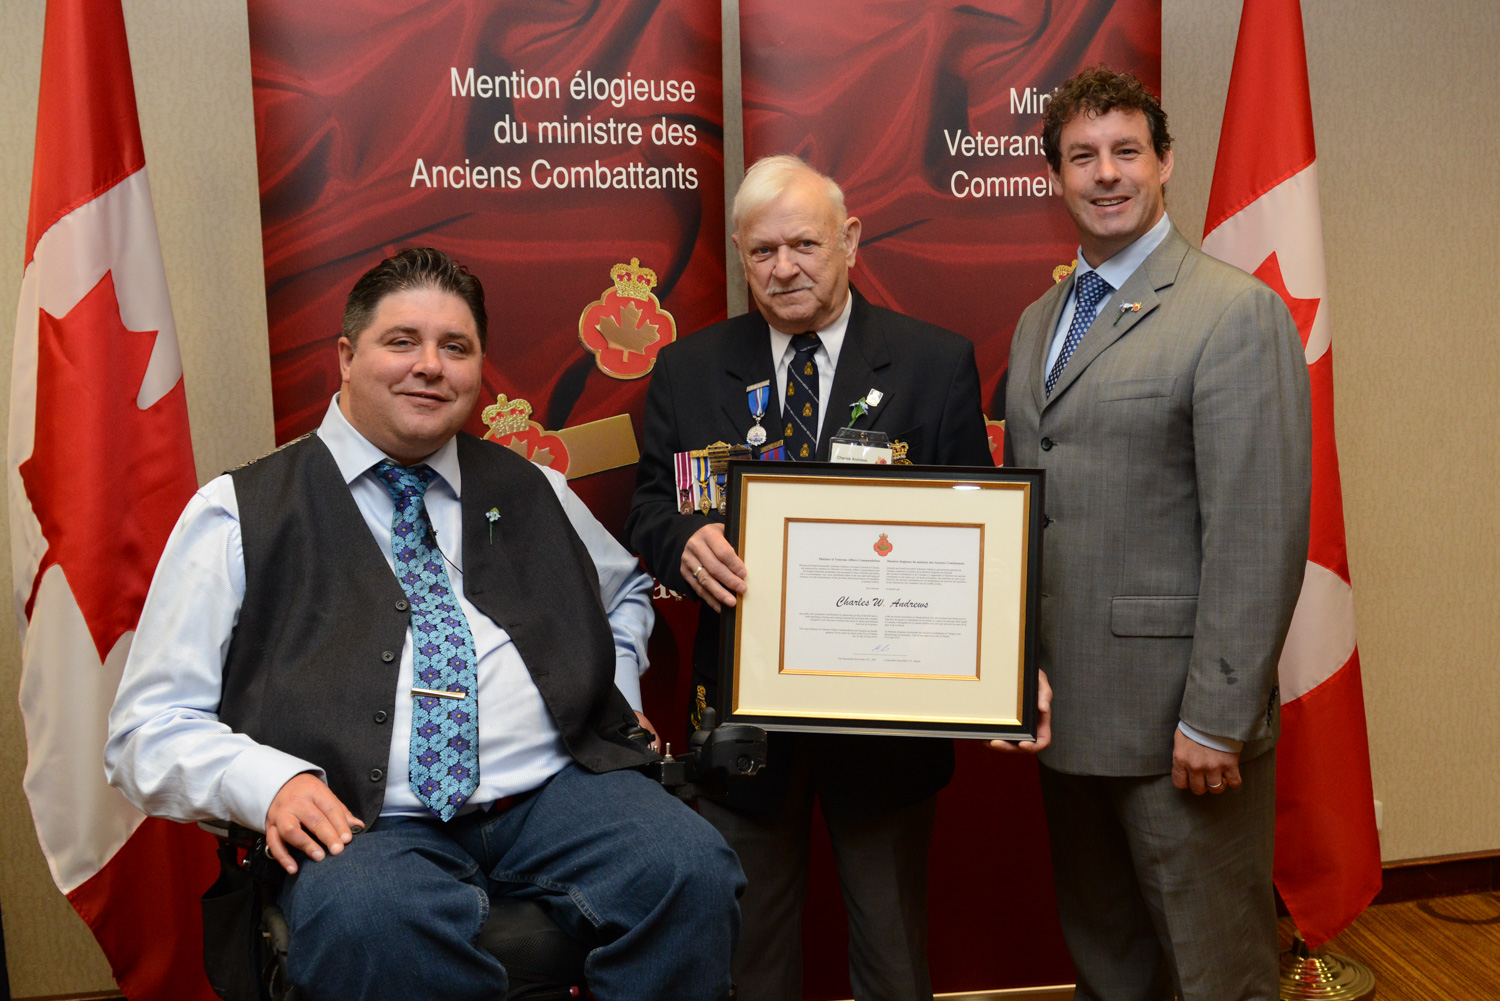 The honorable Kent Hehr, Minister for Veterans Affairs, Mr. Charles Andrews, and Nick Whalen, Member of Parliament for St. John's East.